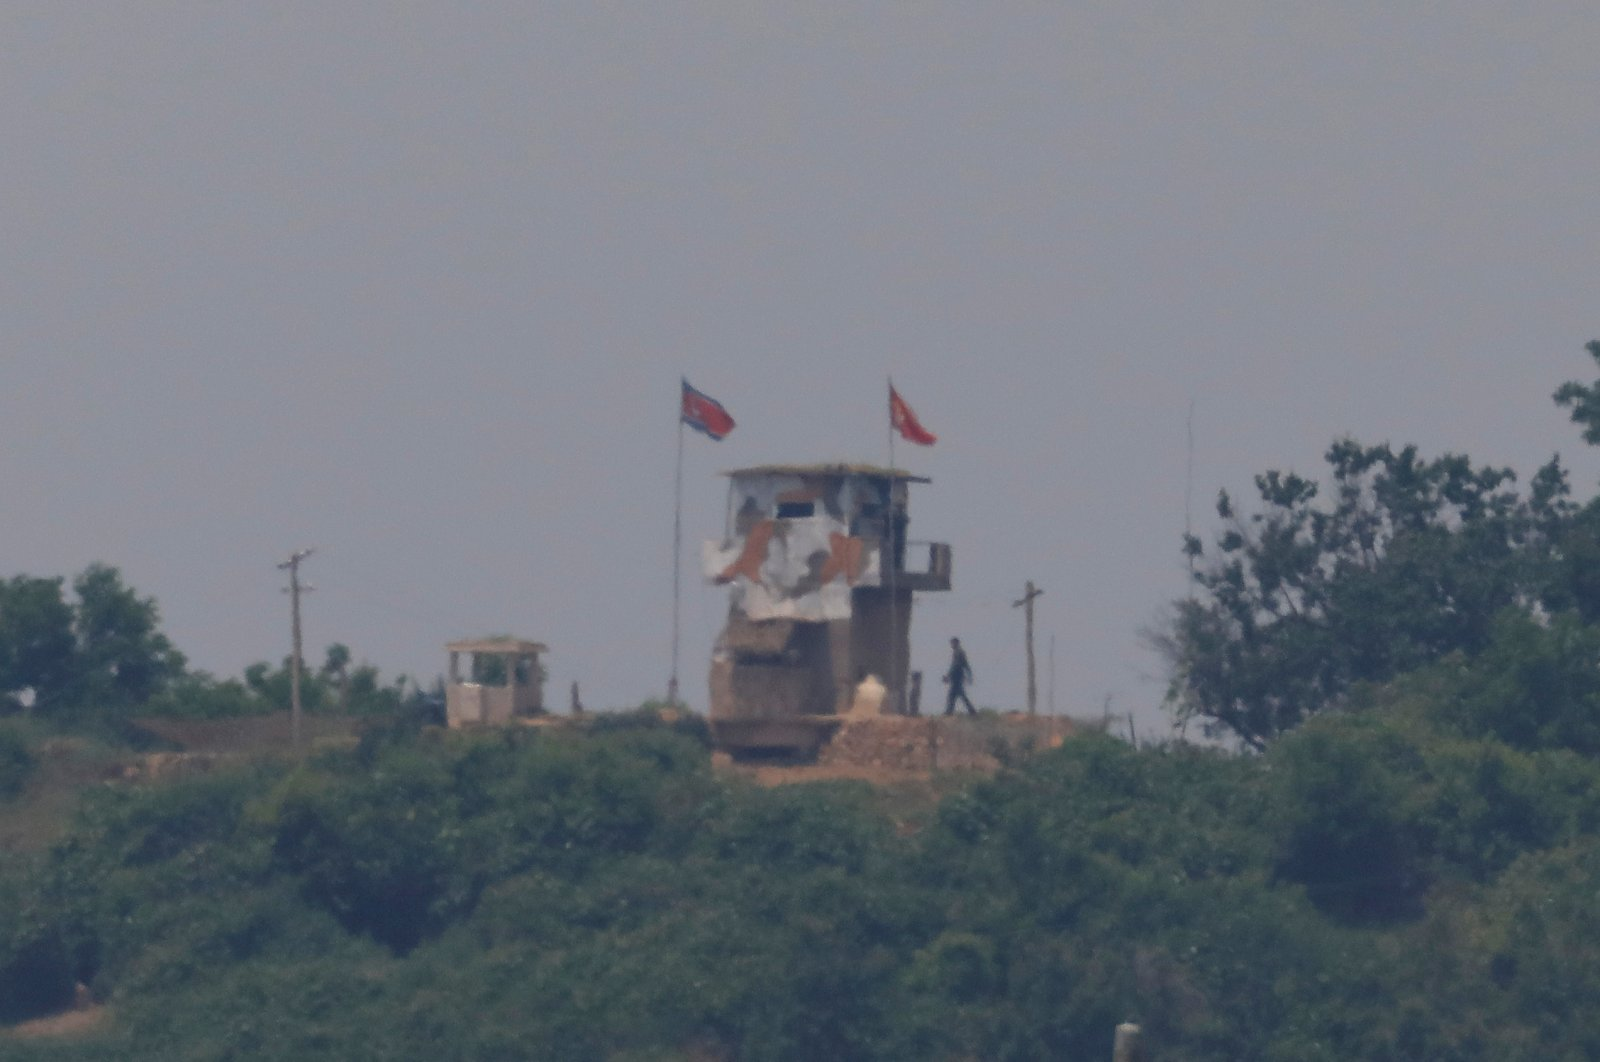 A North Korean soldier is seen beside his guard post inside North Korean territory in this picture taken near the demilitarized zone separating the two Koreas in Paju, South Korea, June 16, 2020. (Reuters Photo)